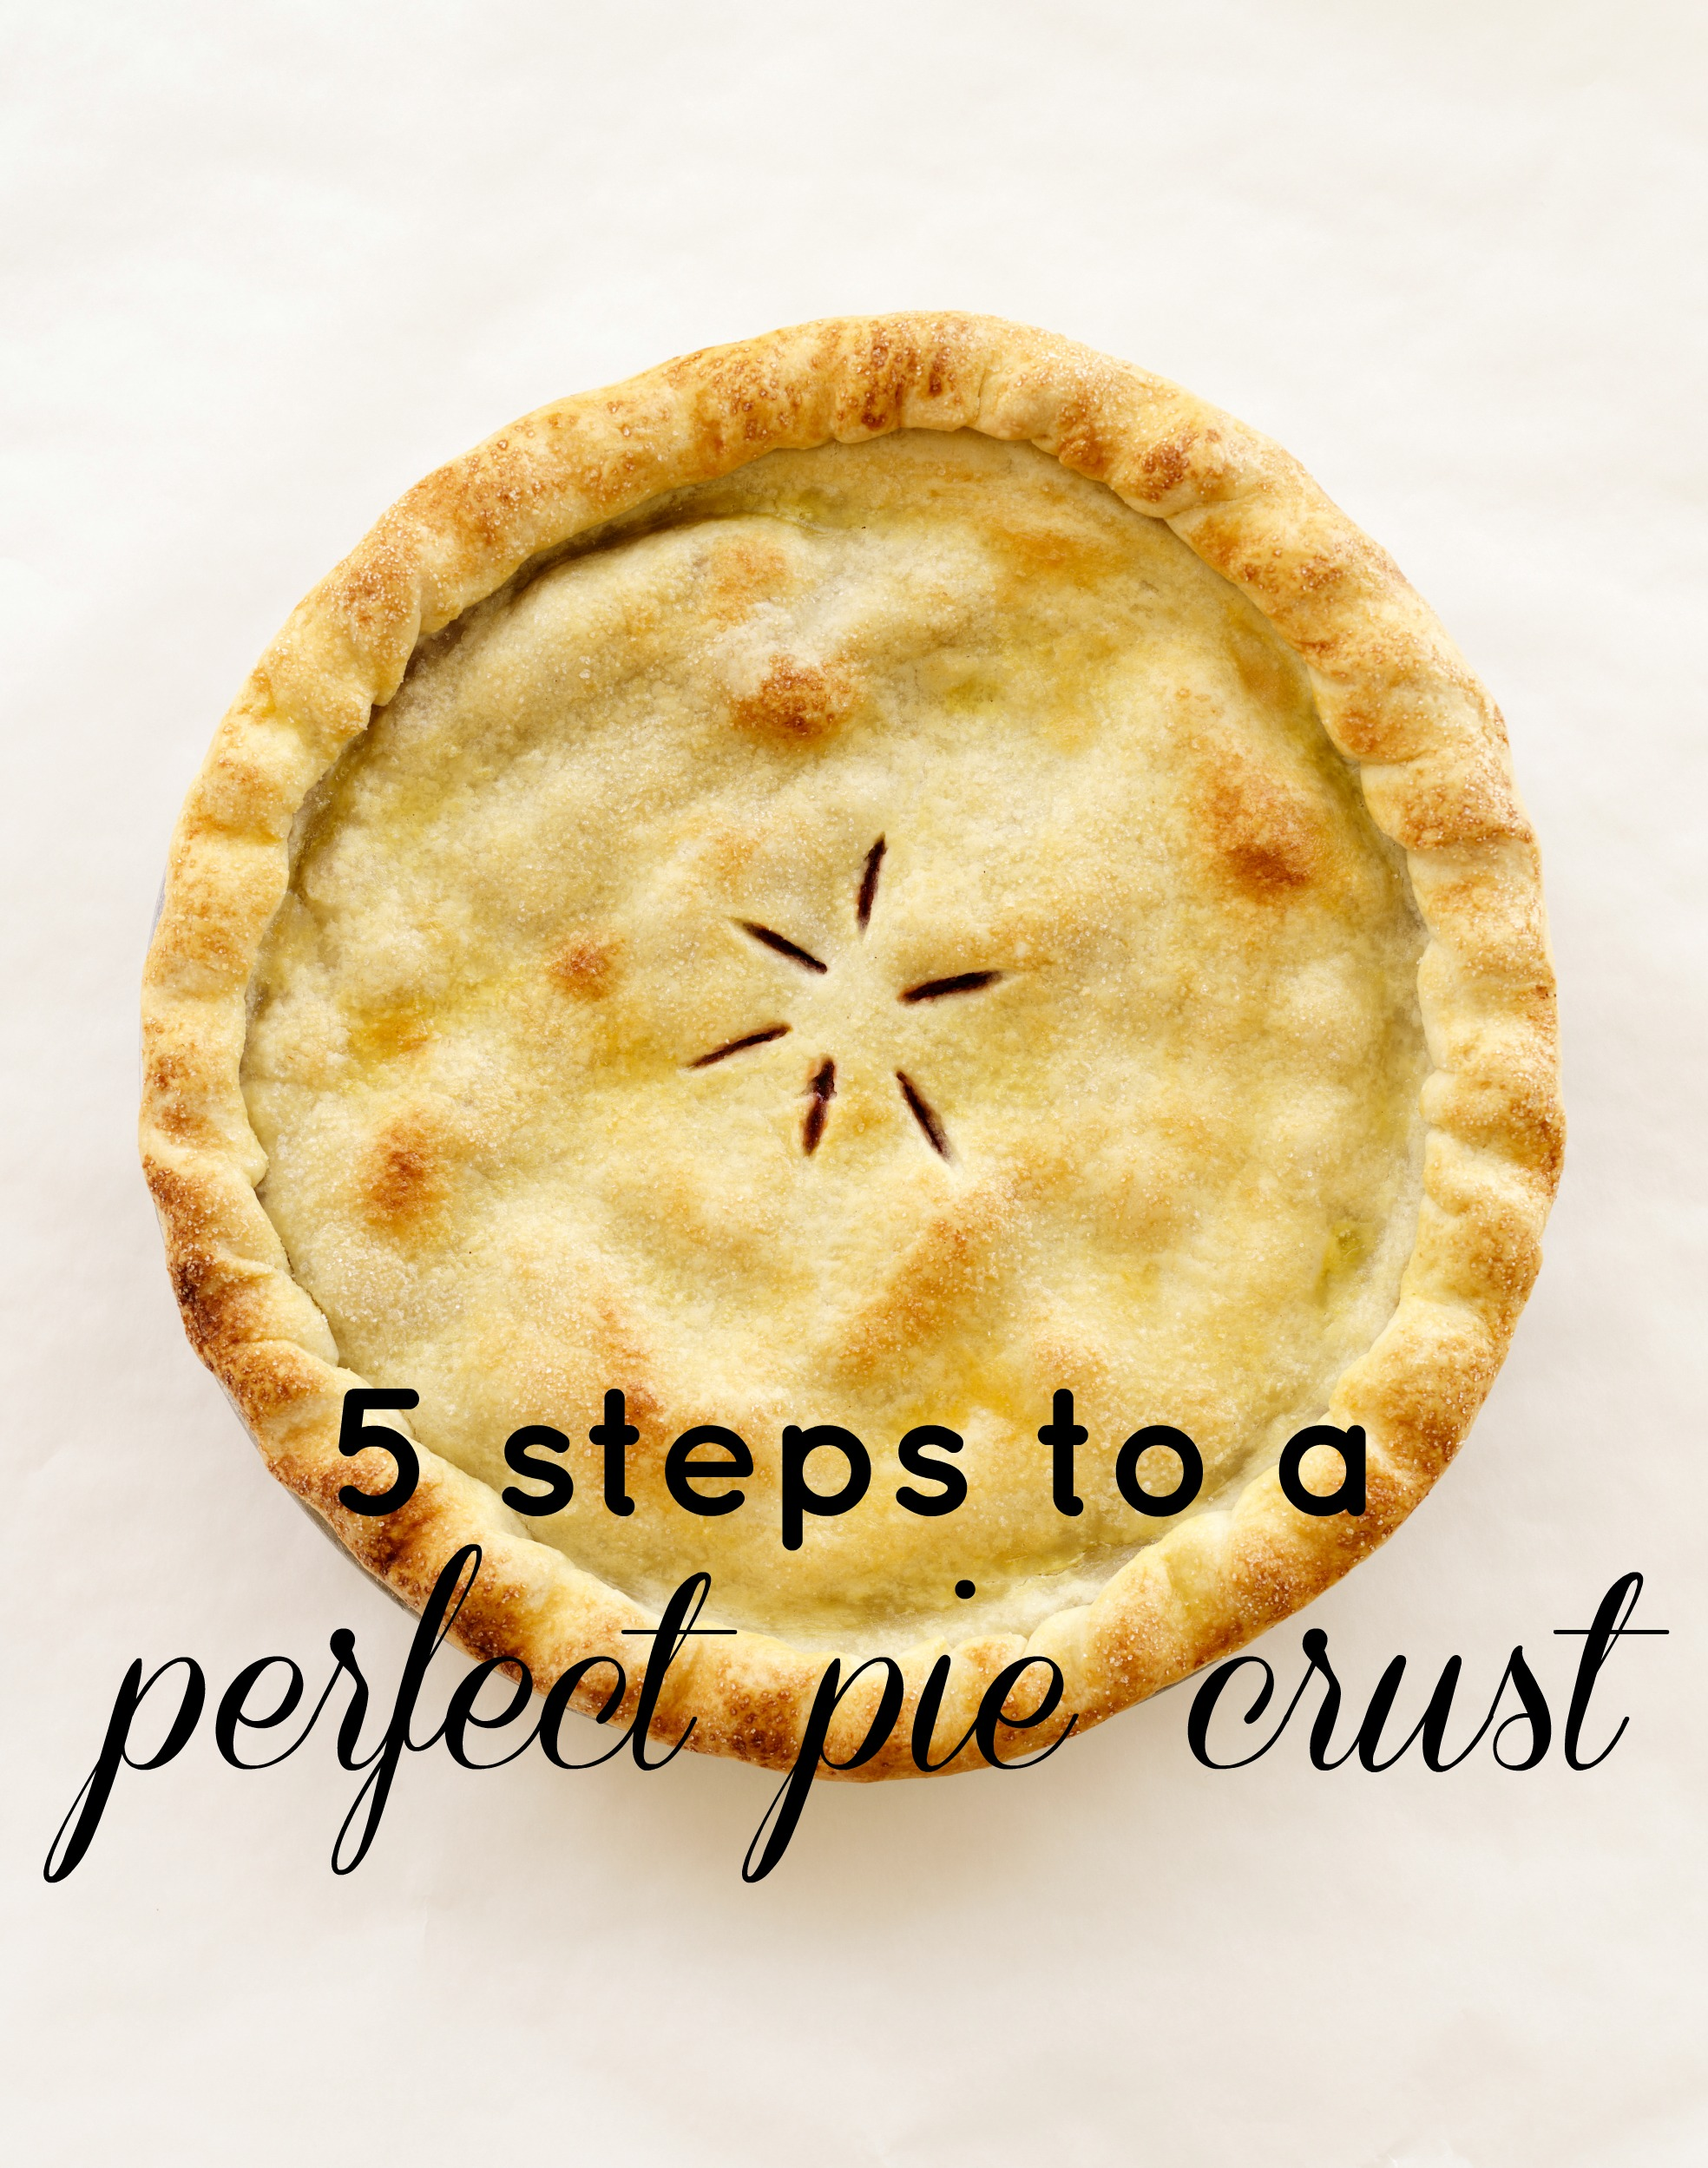 5 Steps to Perfect Pie Crust